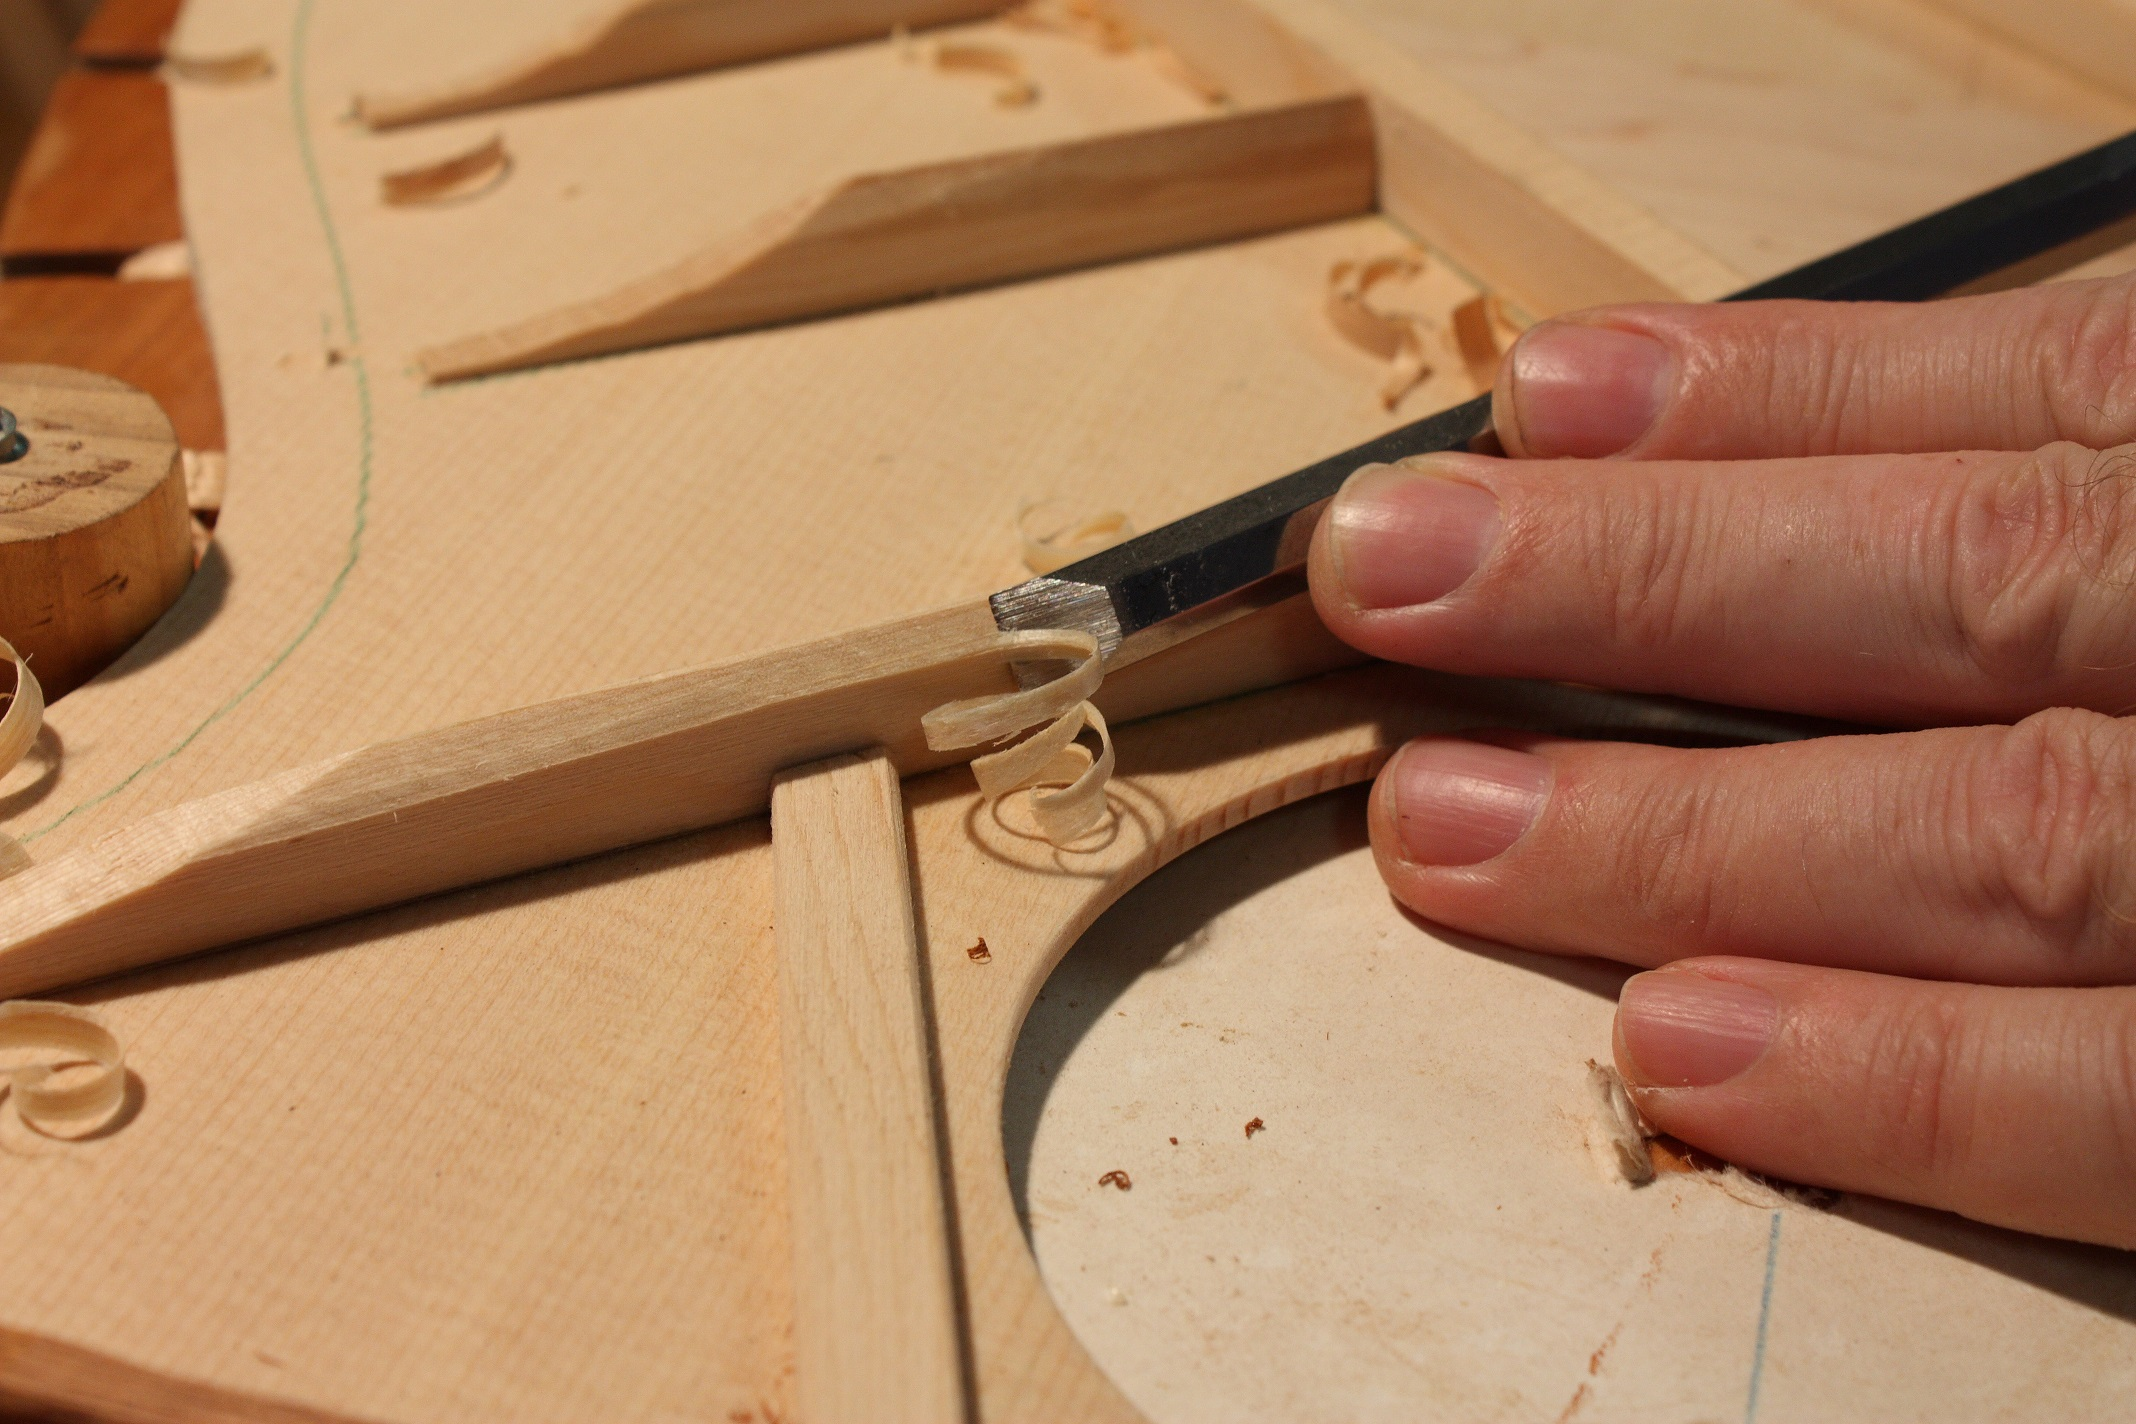 Shaping the Spruce braces of the top. I shaved and scalloped the braces until a clear tap tone was achieved.